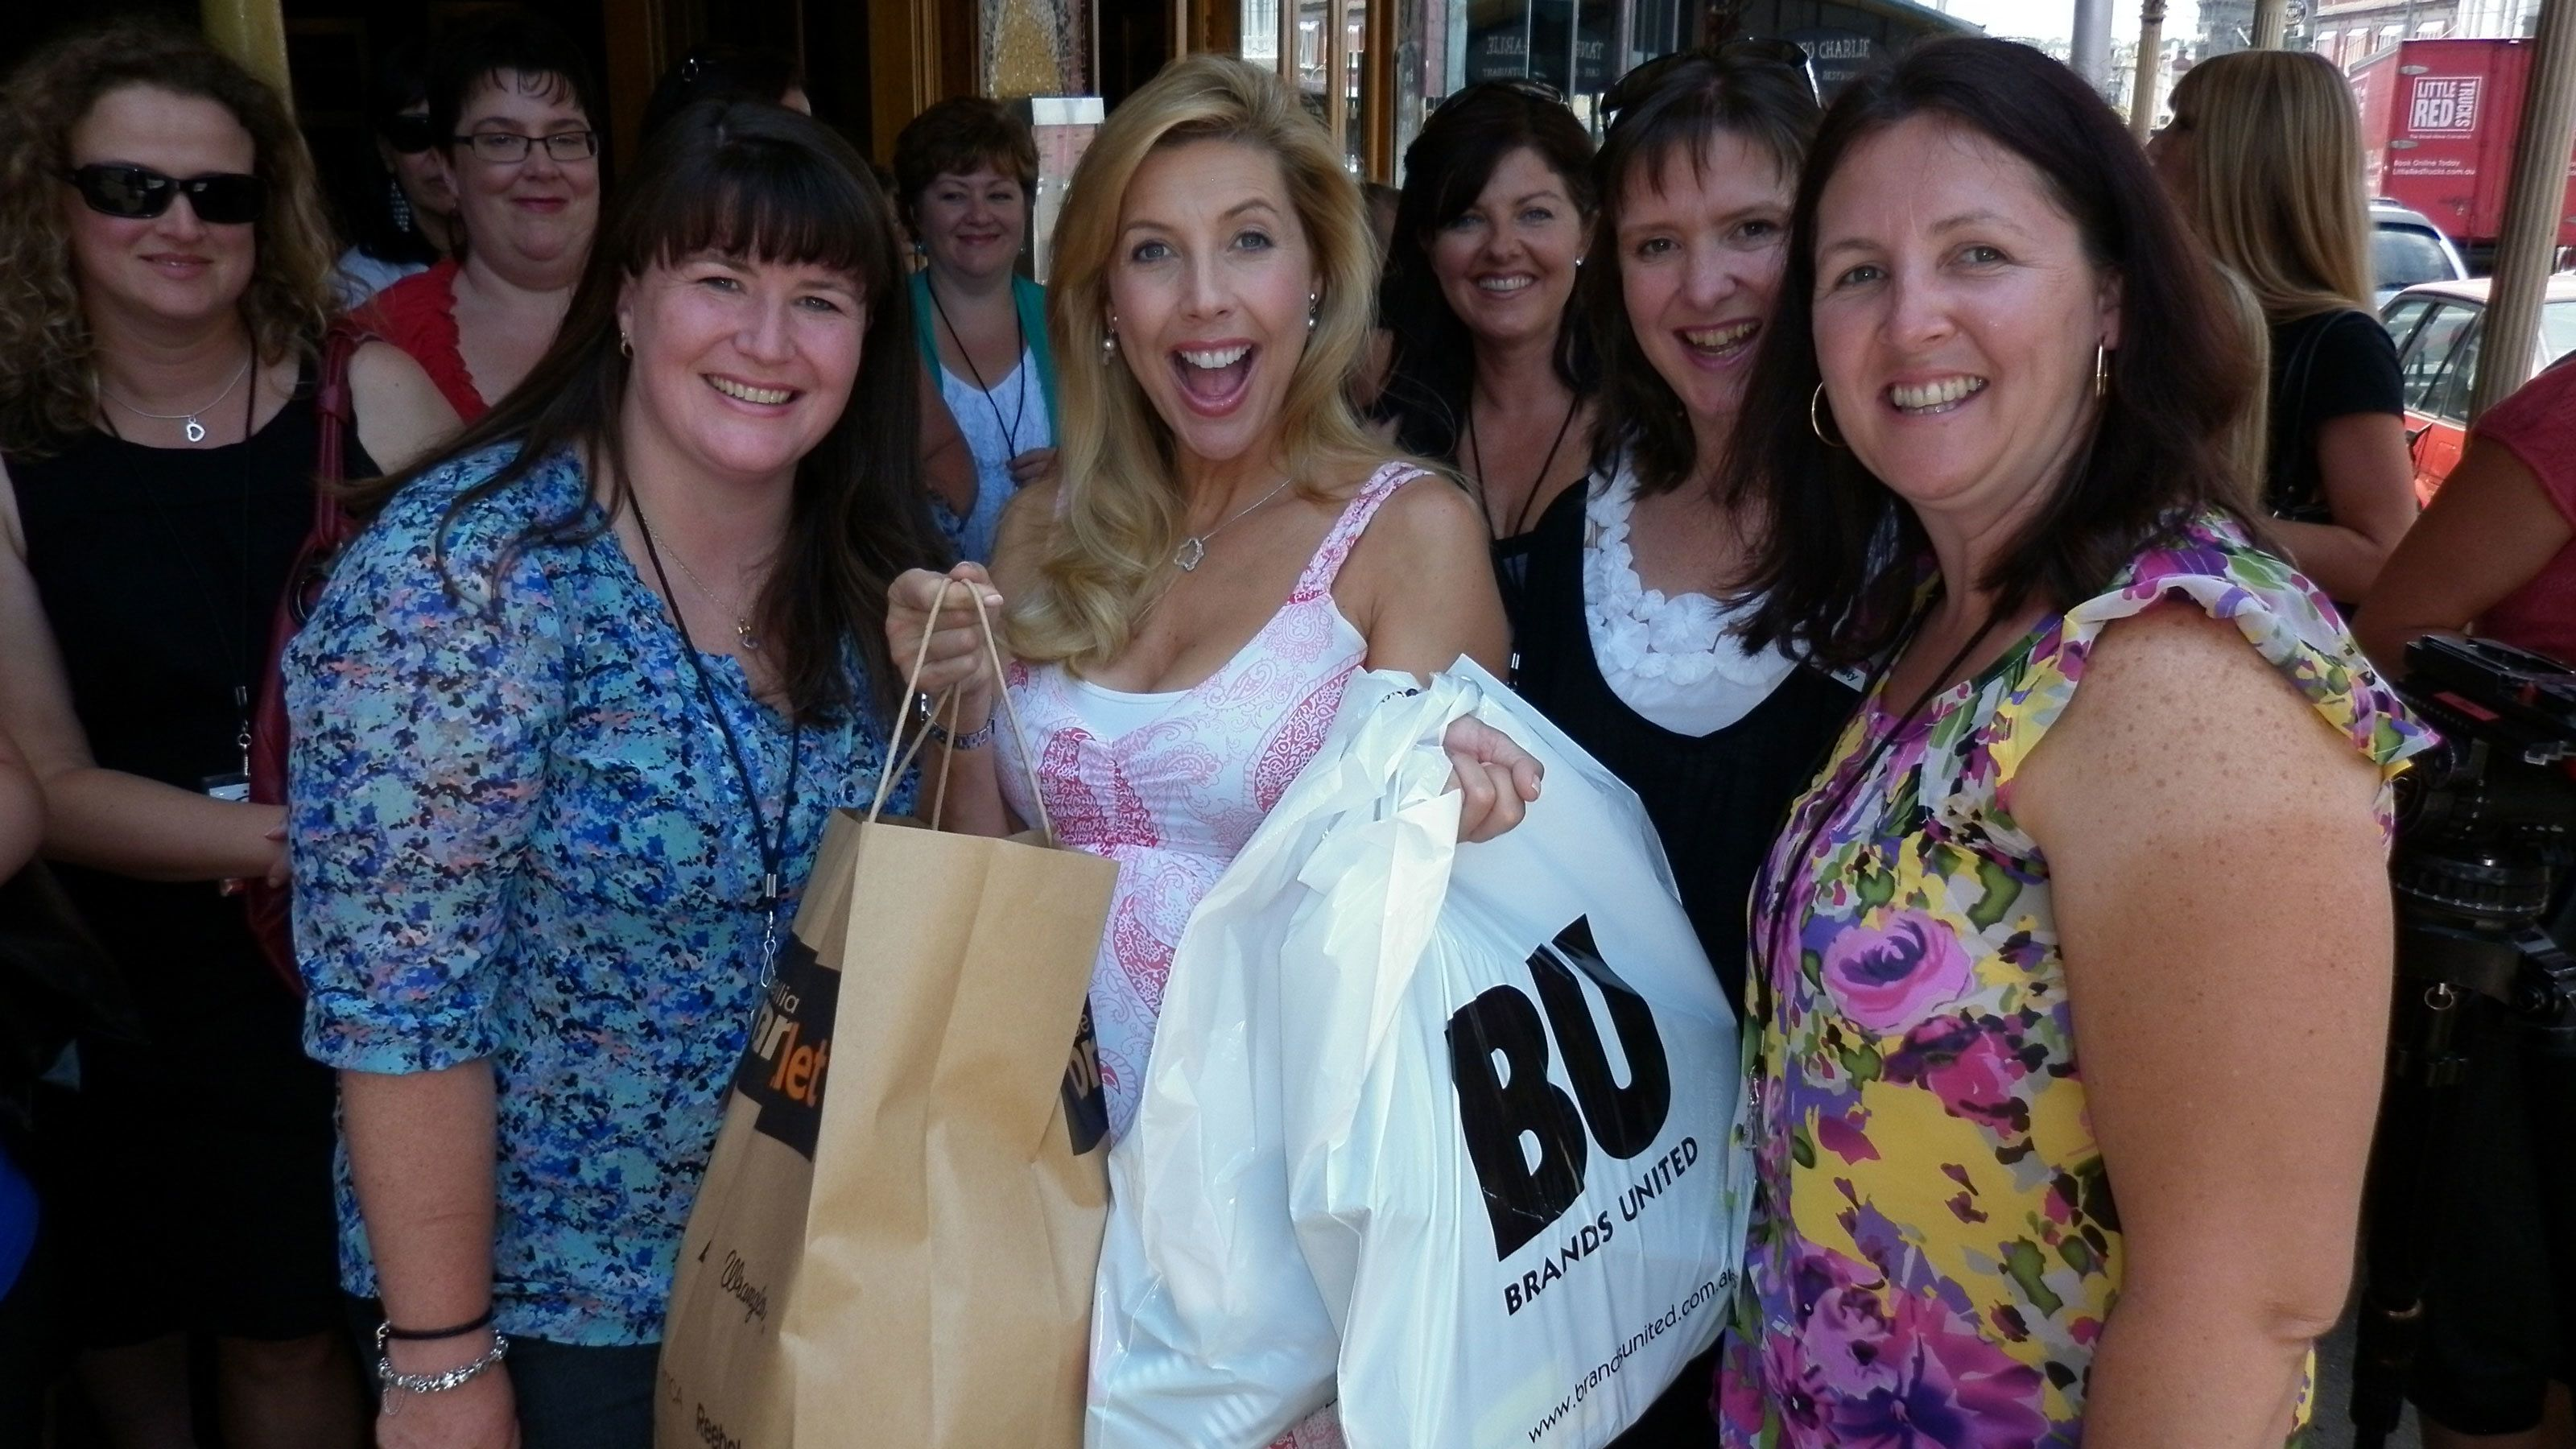 Shopping group with purchases in Melbourne